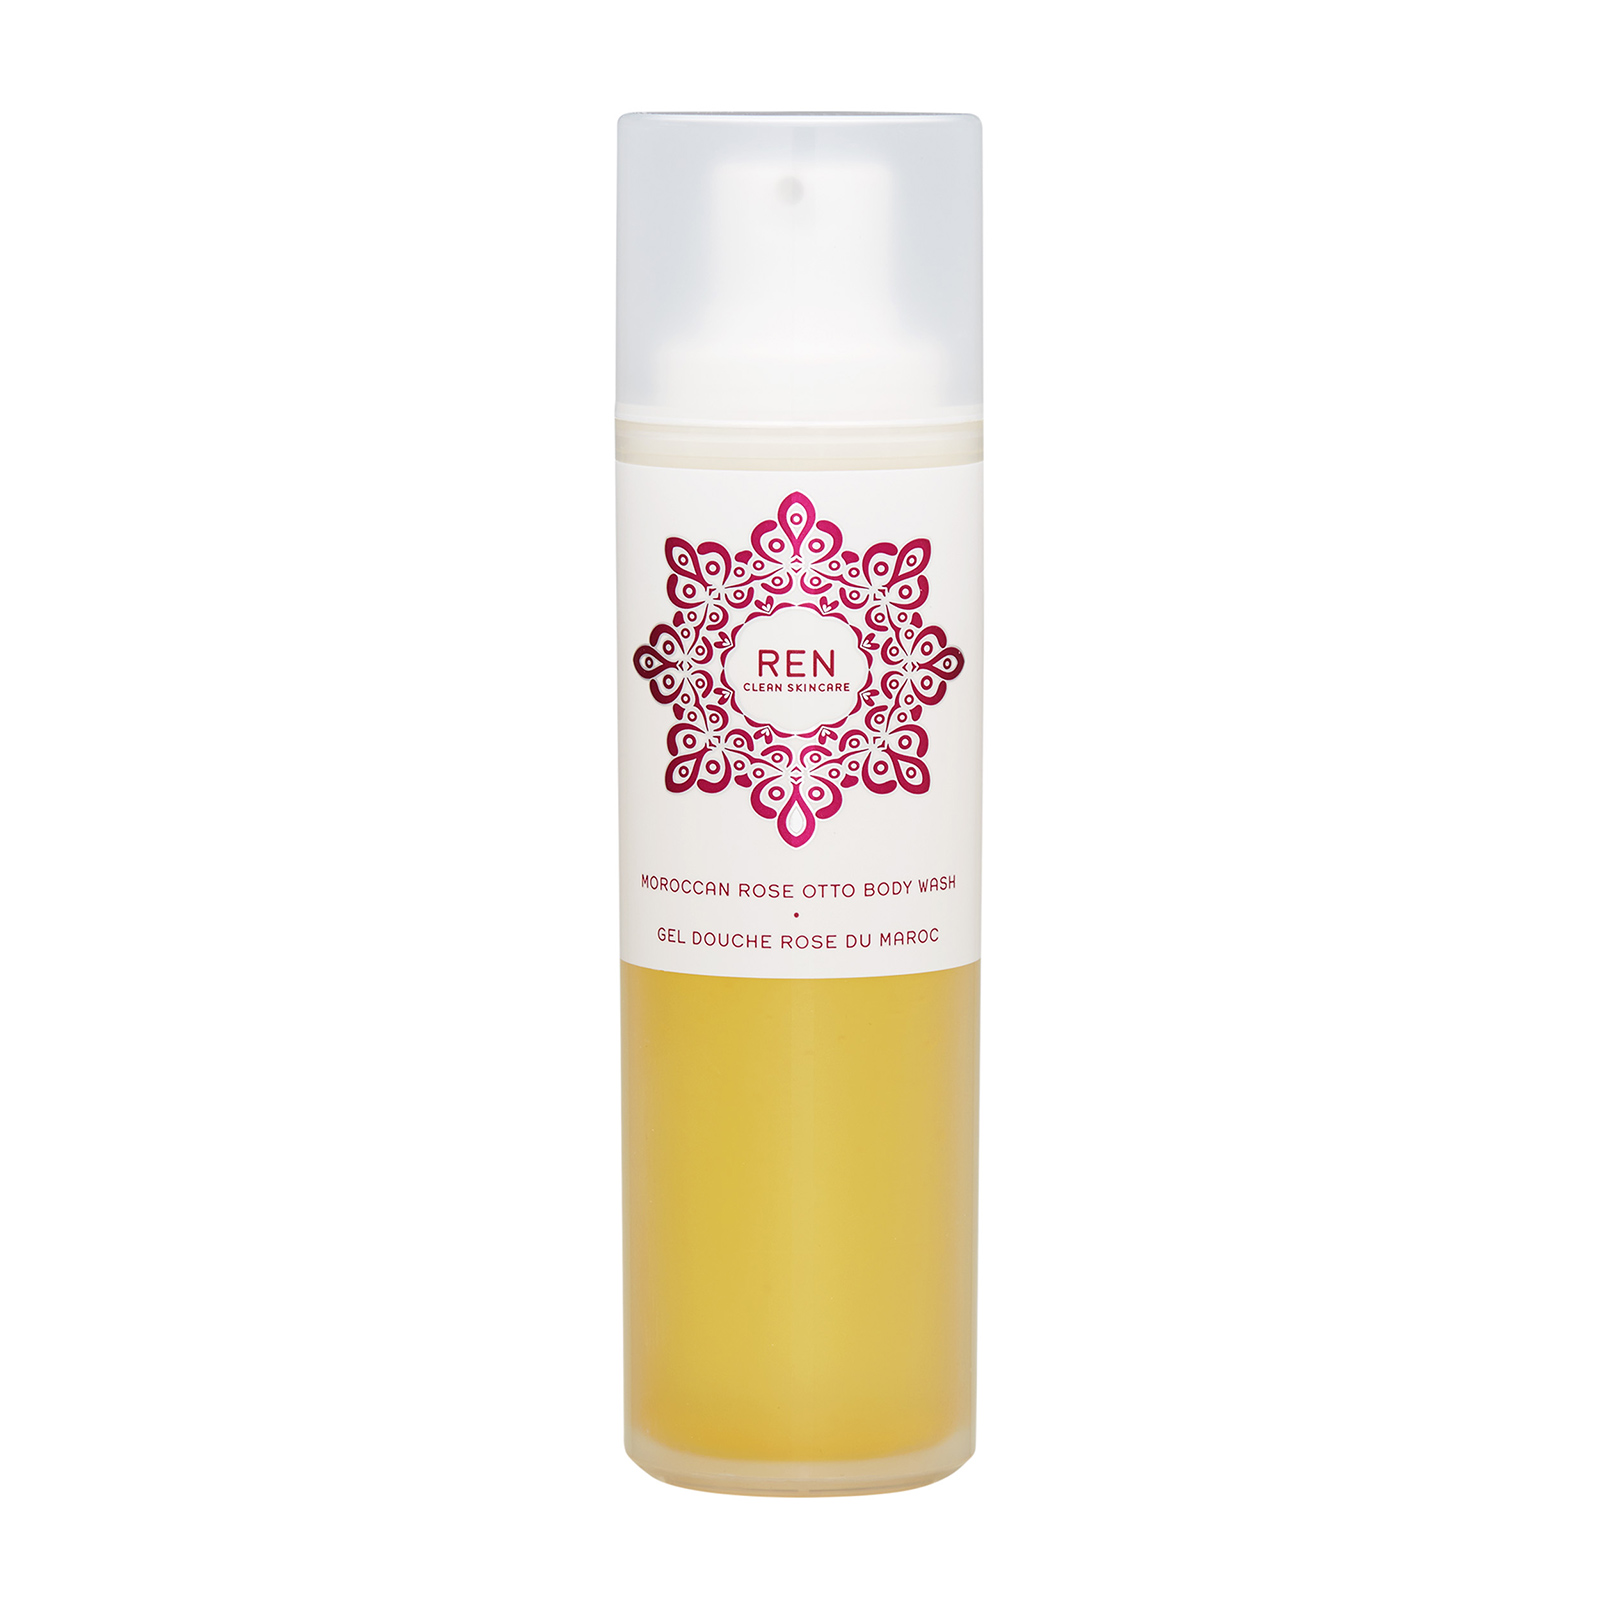 REN Moroccan Rose  Otto Body Wash (All Skin Types) 6.8oz, 200ml from Cosme-De.com